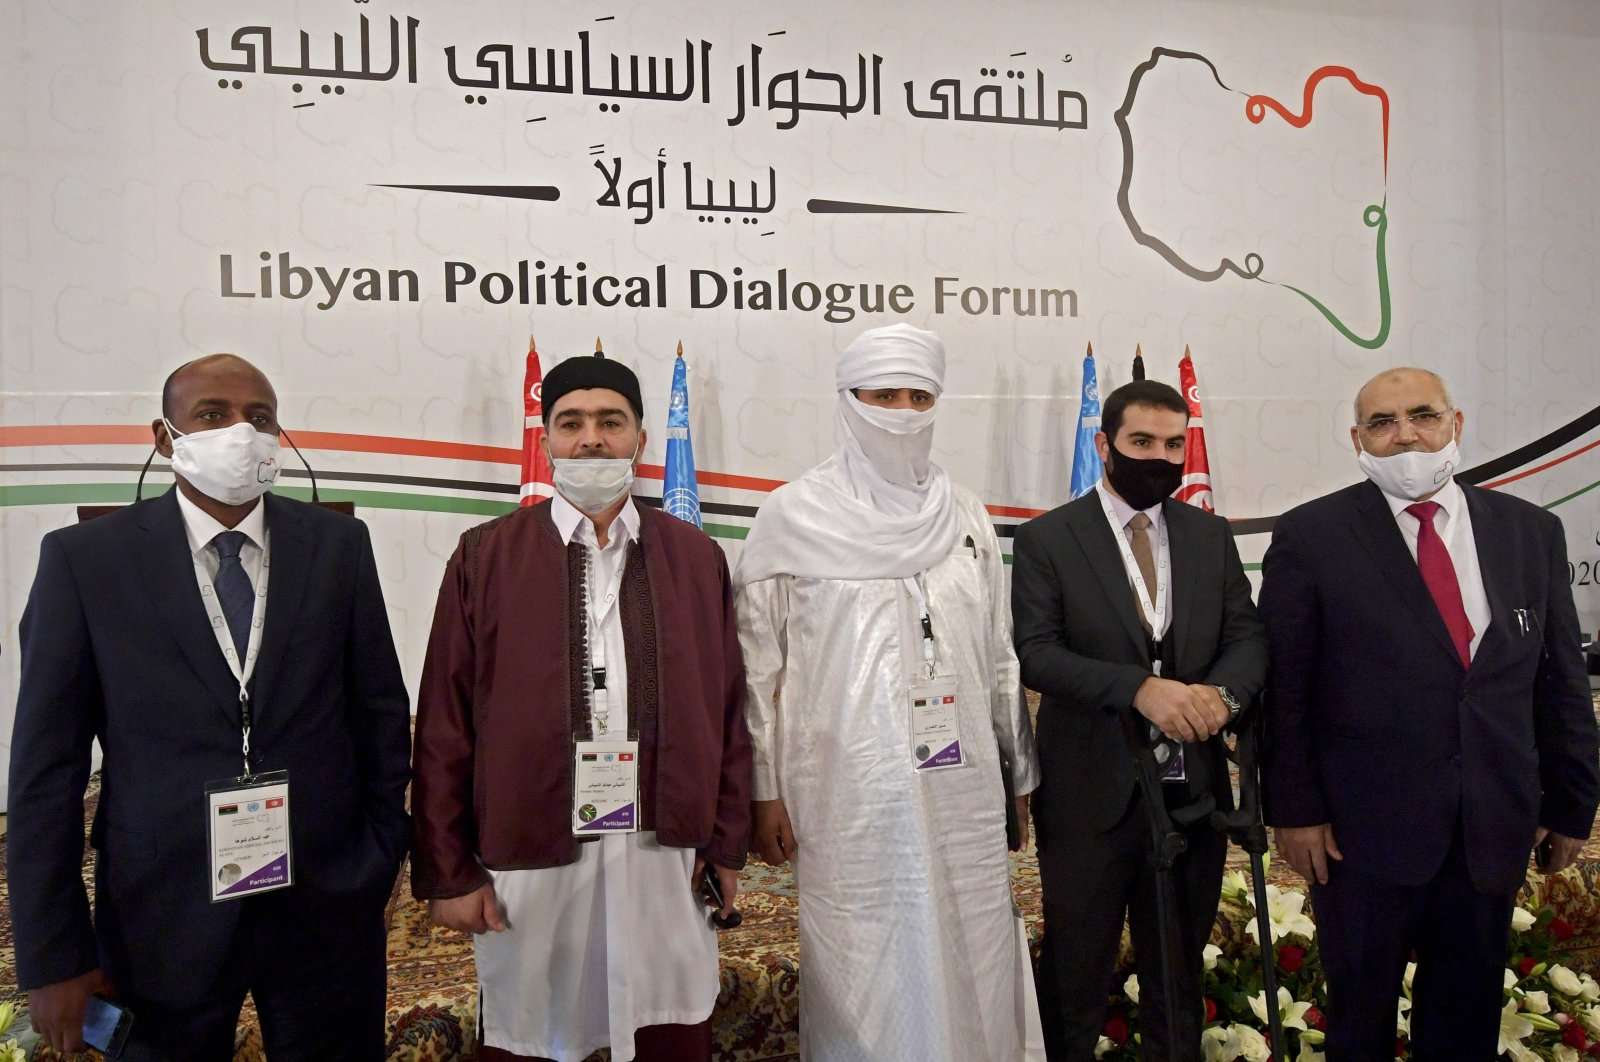 Libyan delegates, including (L-R) Abdessalam Shuha, Abdallah Shibani, Hussein Mohamed Elansari, an unidentified participant and Abdel Majid Mlayqtah attend the opening of the Libyan Political Dialogue Forum hosted in Gammarth on the outskirts of Tunisia's capital, on Nov. 9, 2020. (AFP Photo)